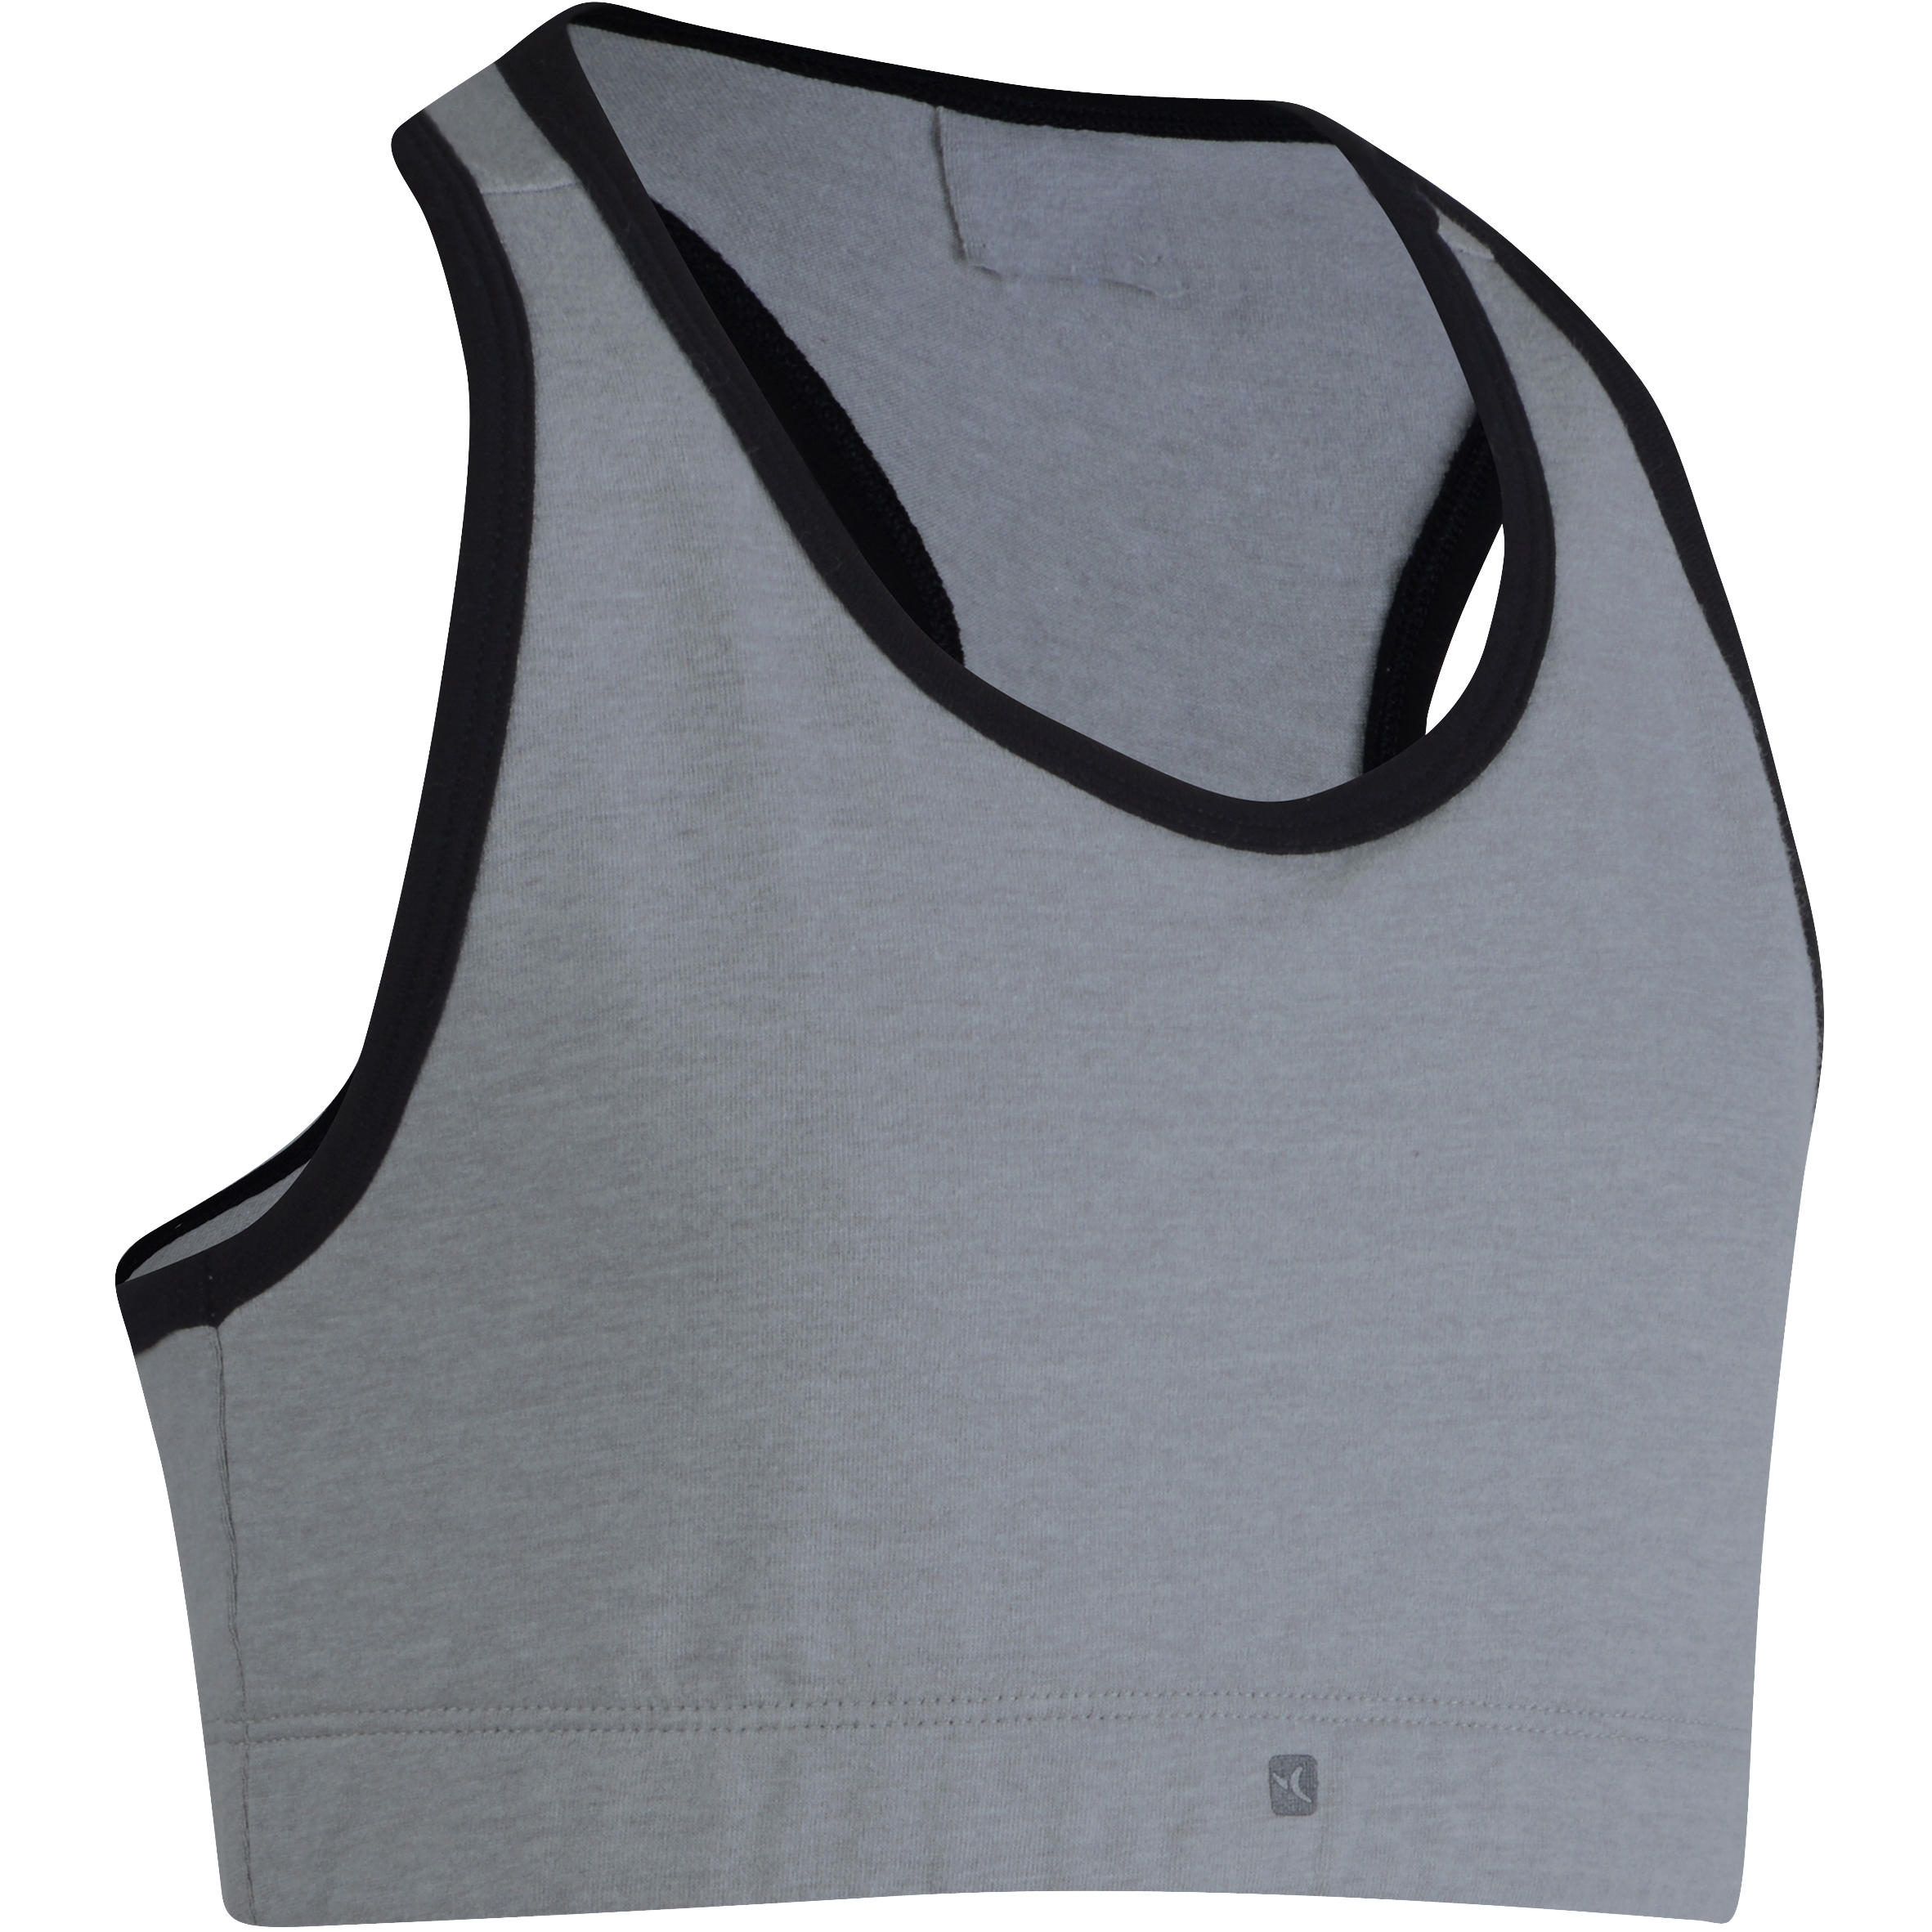 500 Girls' Gym Crop Top - Grey/Black